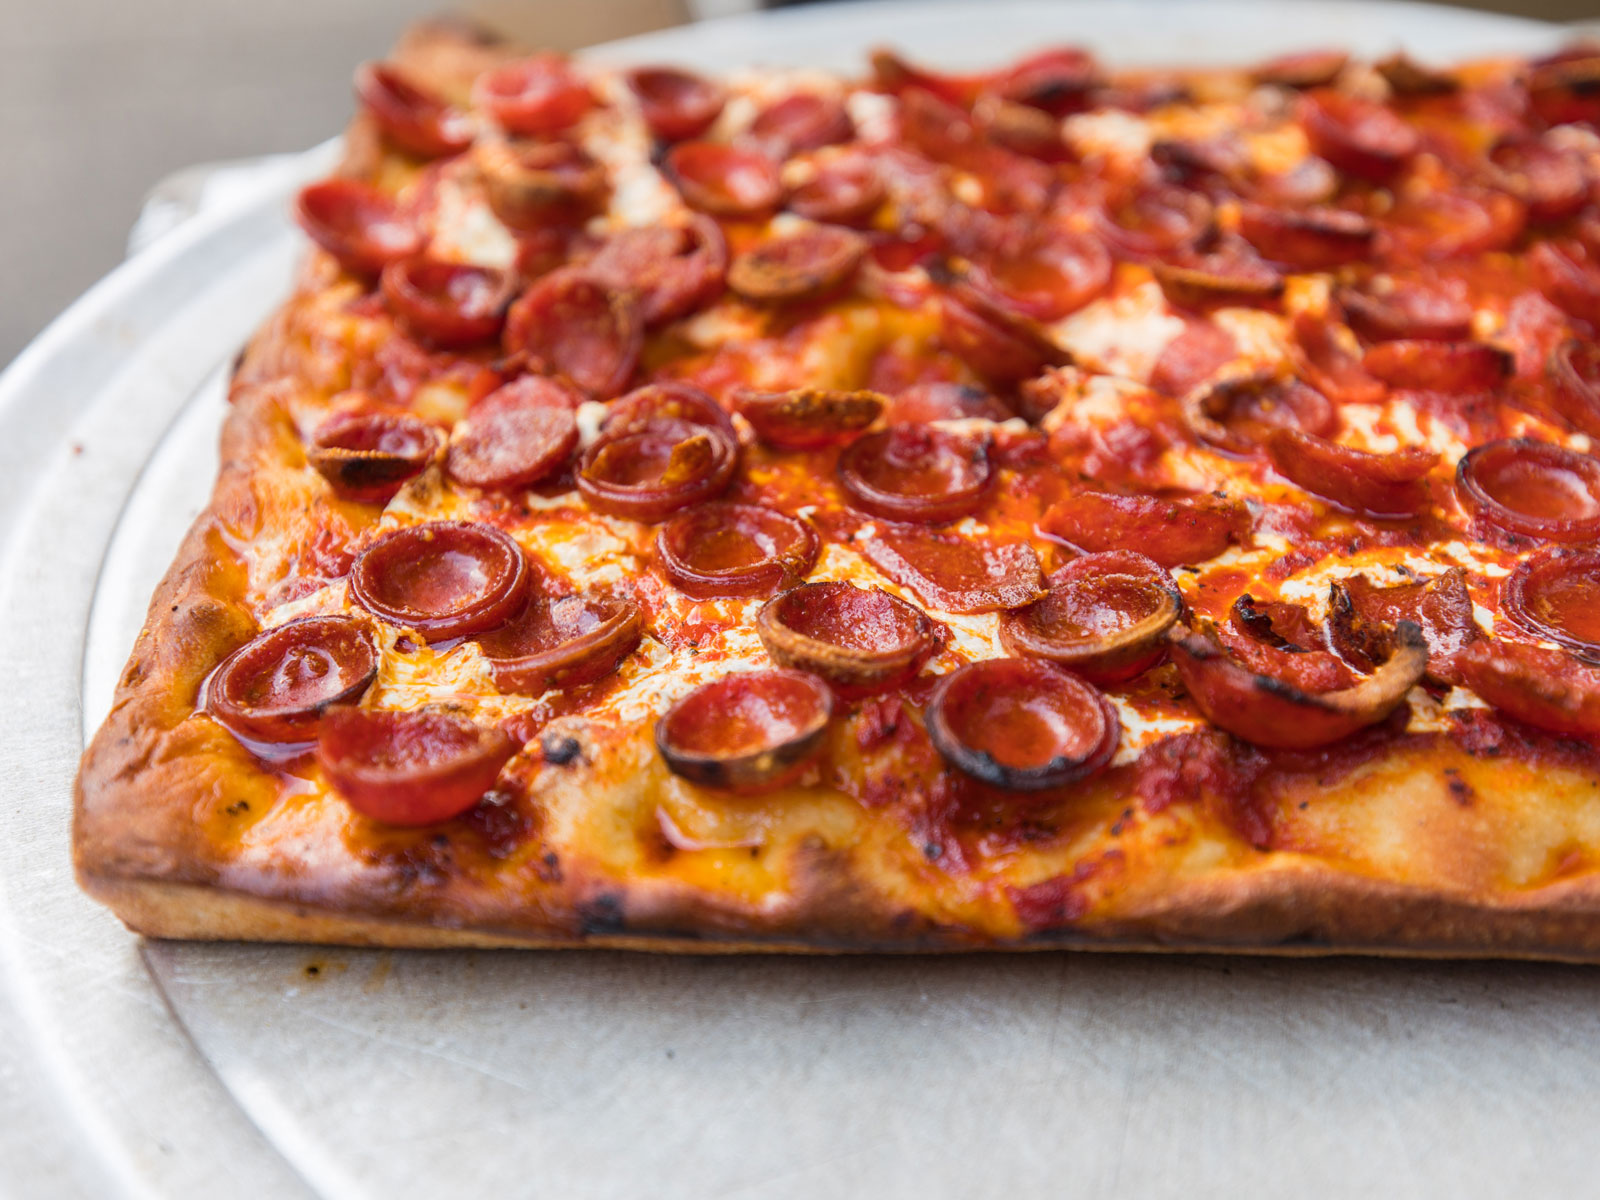 New York's Iconic Pepperoni Pizza Is in L.A. This Weekend